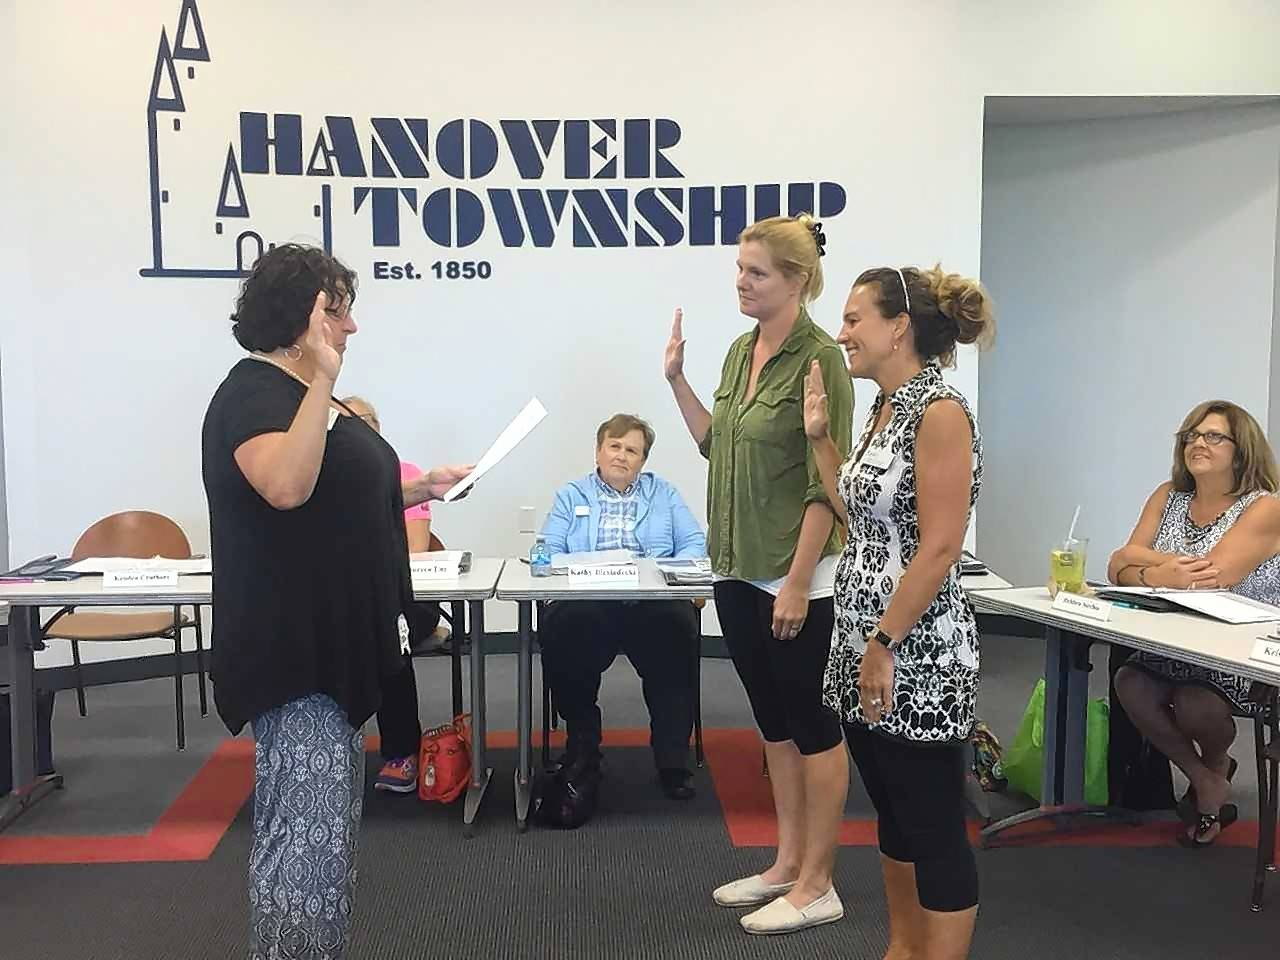 Hanover Township Clerk Katy Dolan Baumer swears in members Meghan Nelson and Kristen Cruthers.